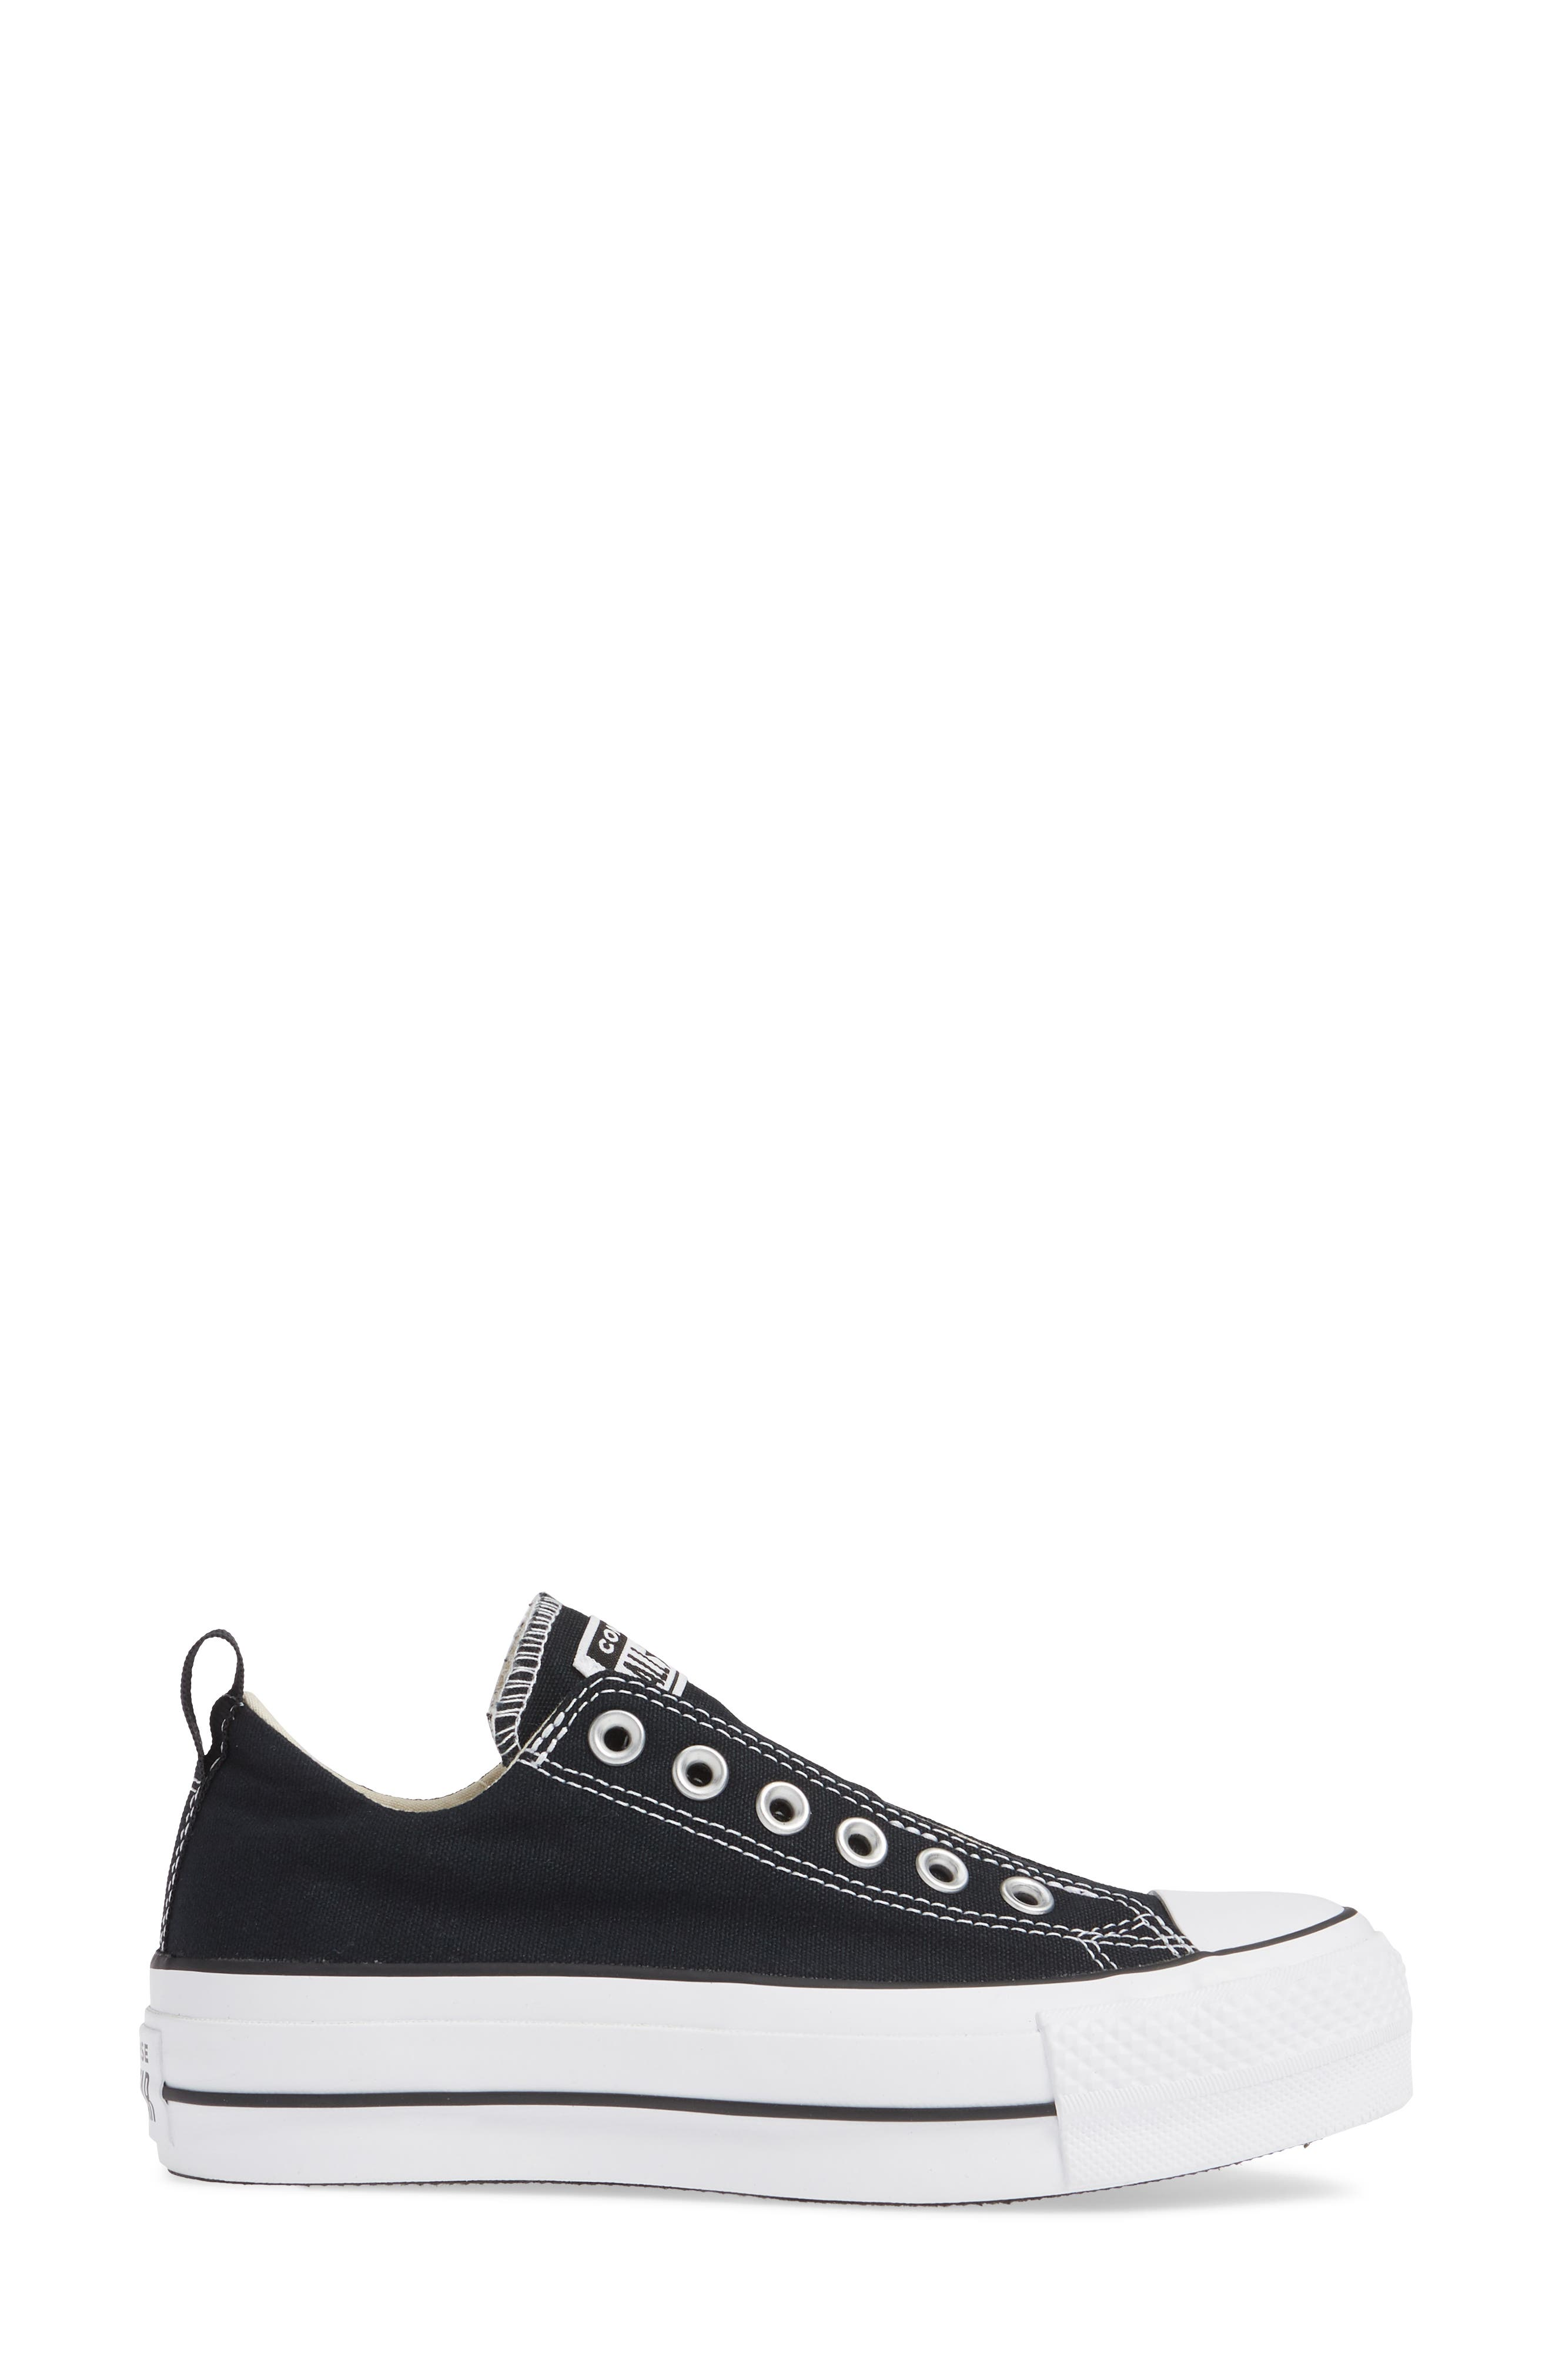 CONVERSE, Chuck Taylor<sup>®</sup> All Star<sup>®</sup> Low Top Sneaker, Alternate thumbnail 3, color, BLACK/ WHITE/ BLACK